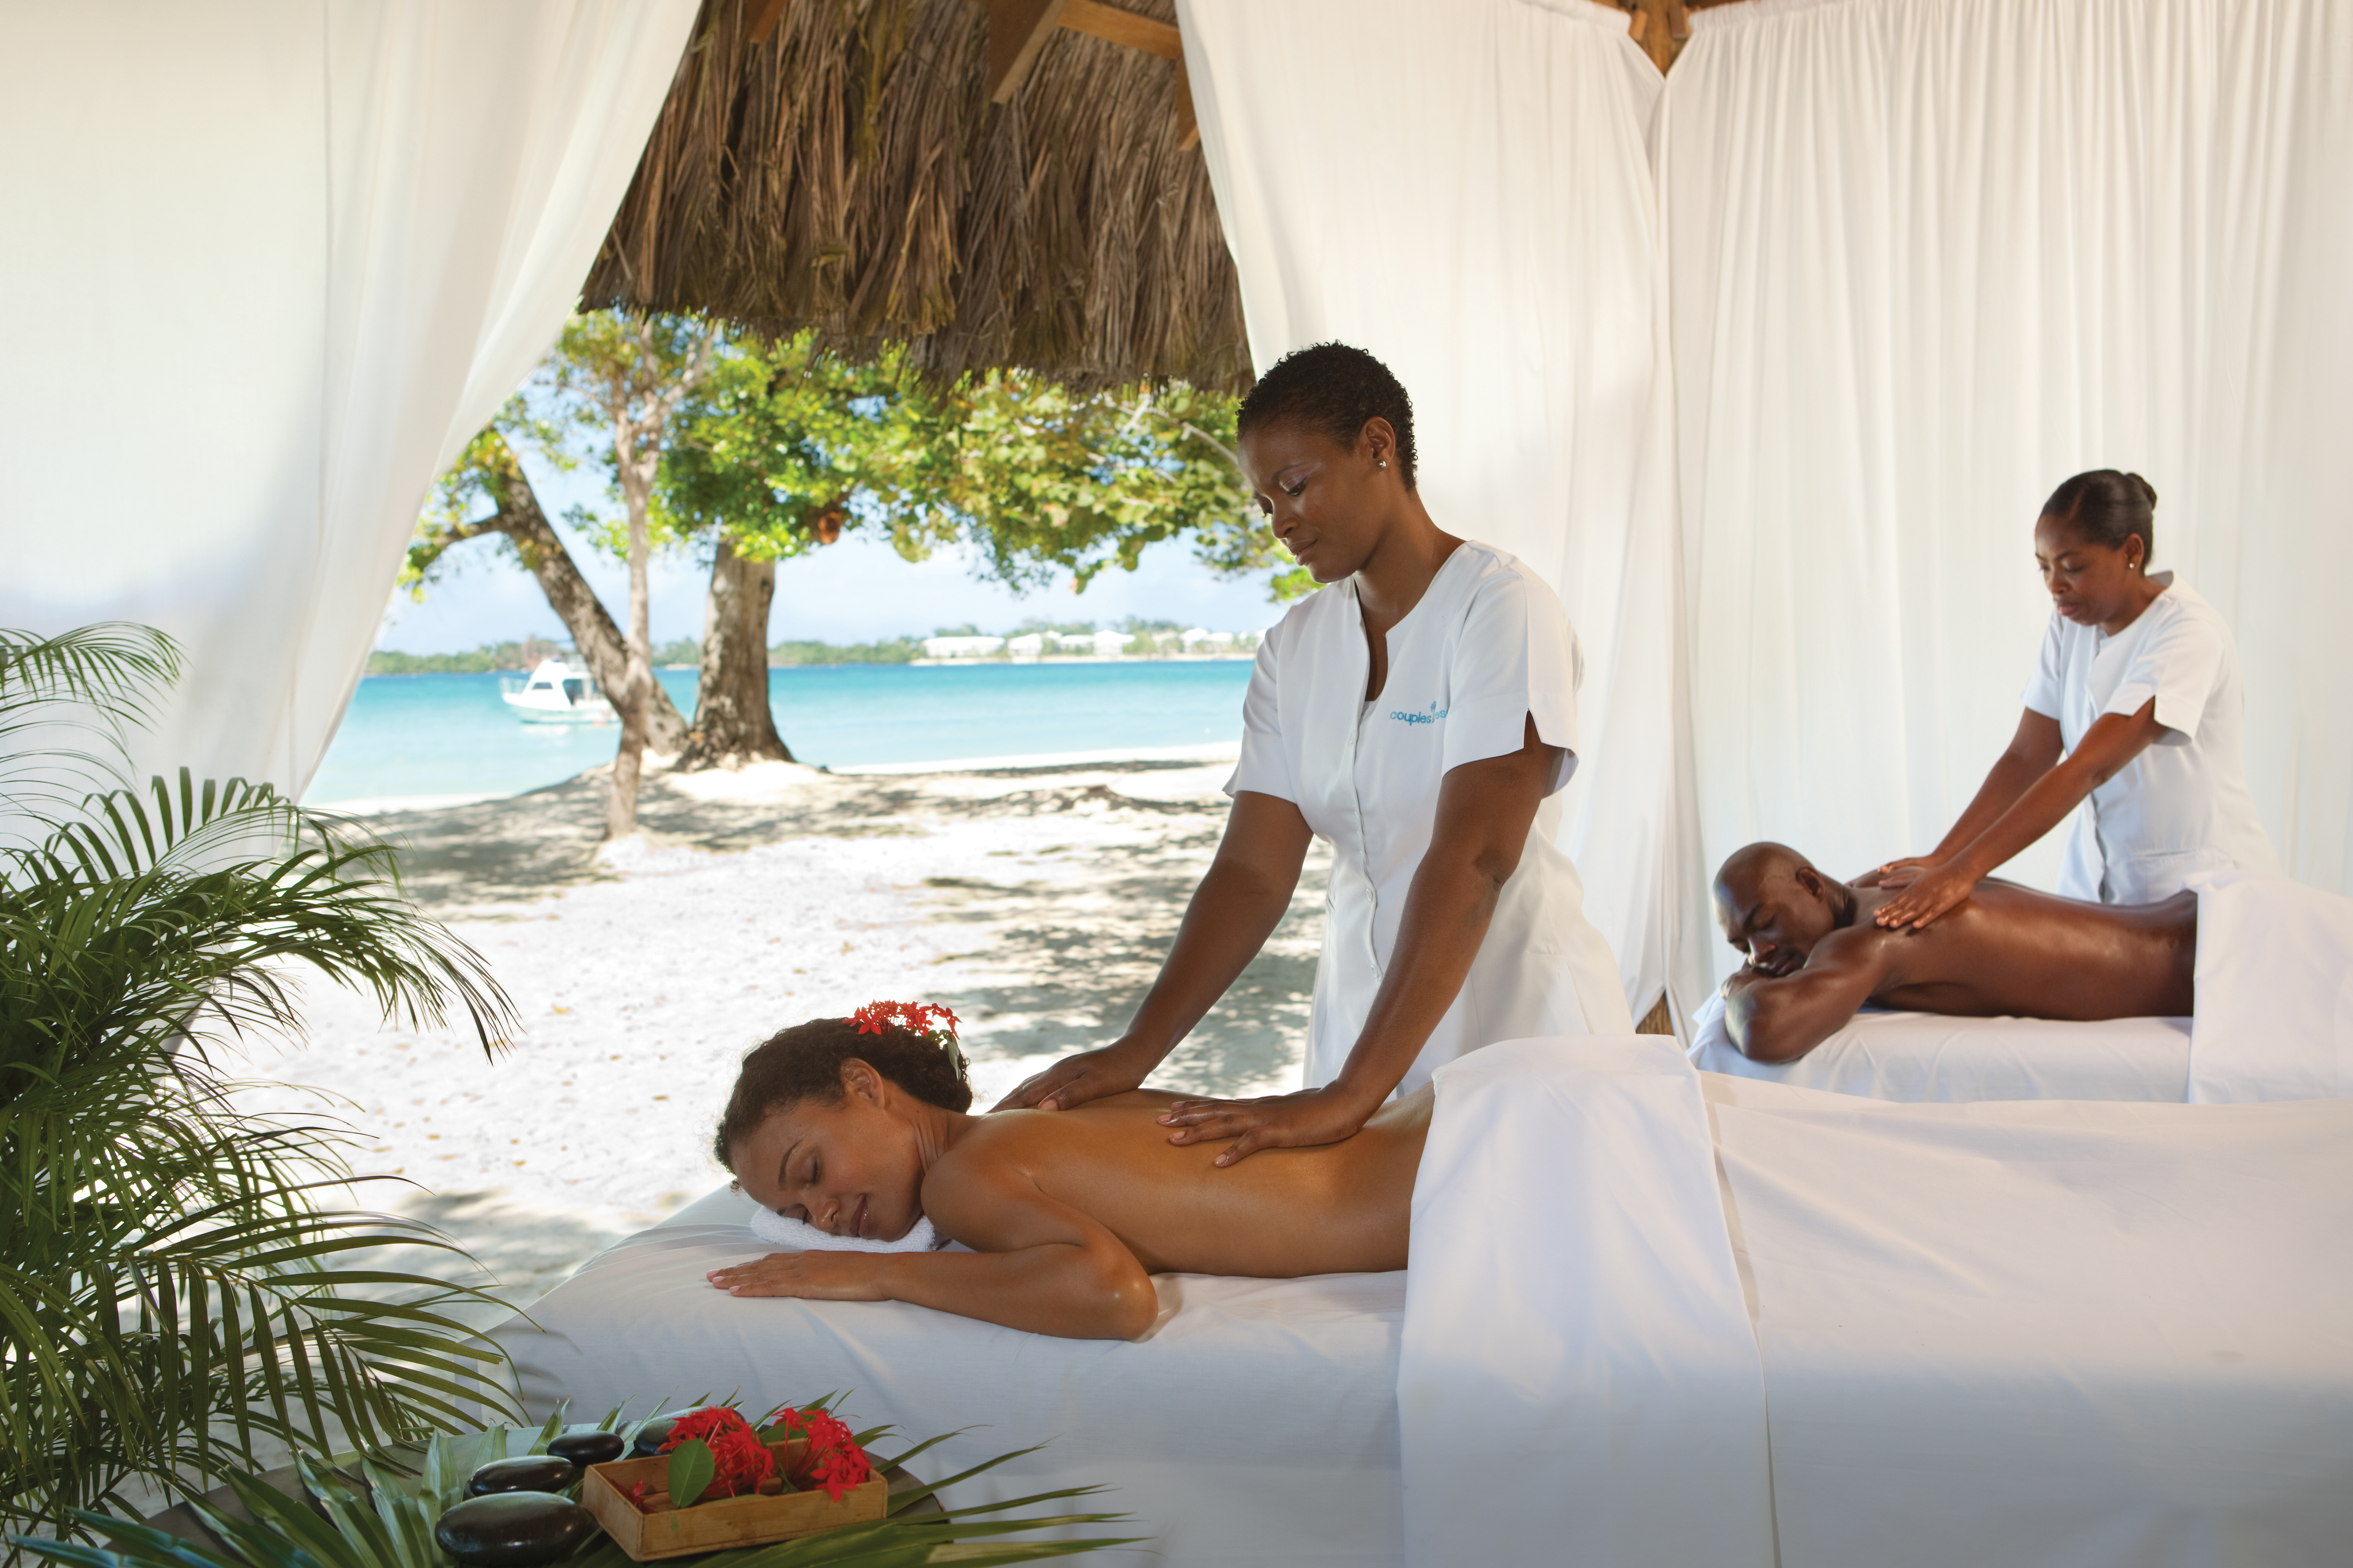 Travel Agency All-Inclusive Resort Couples Negril 39